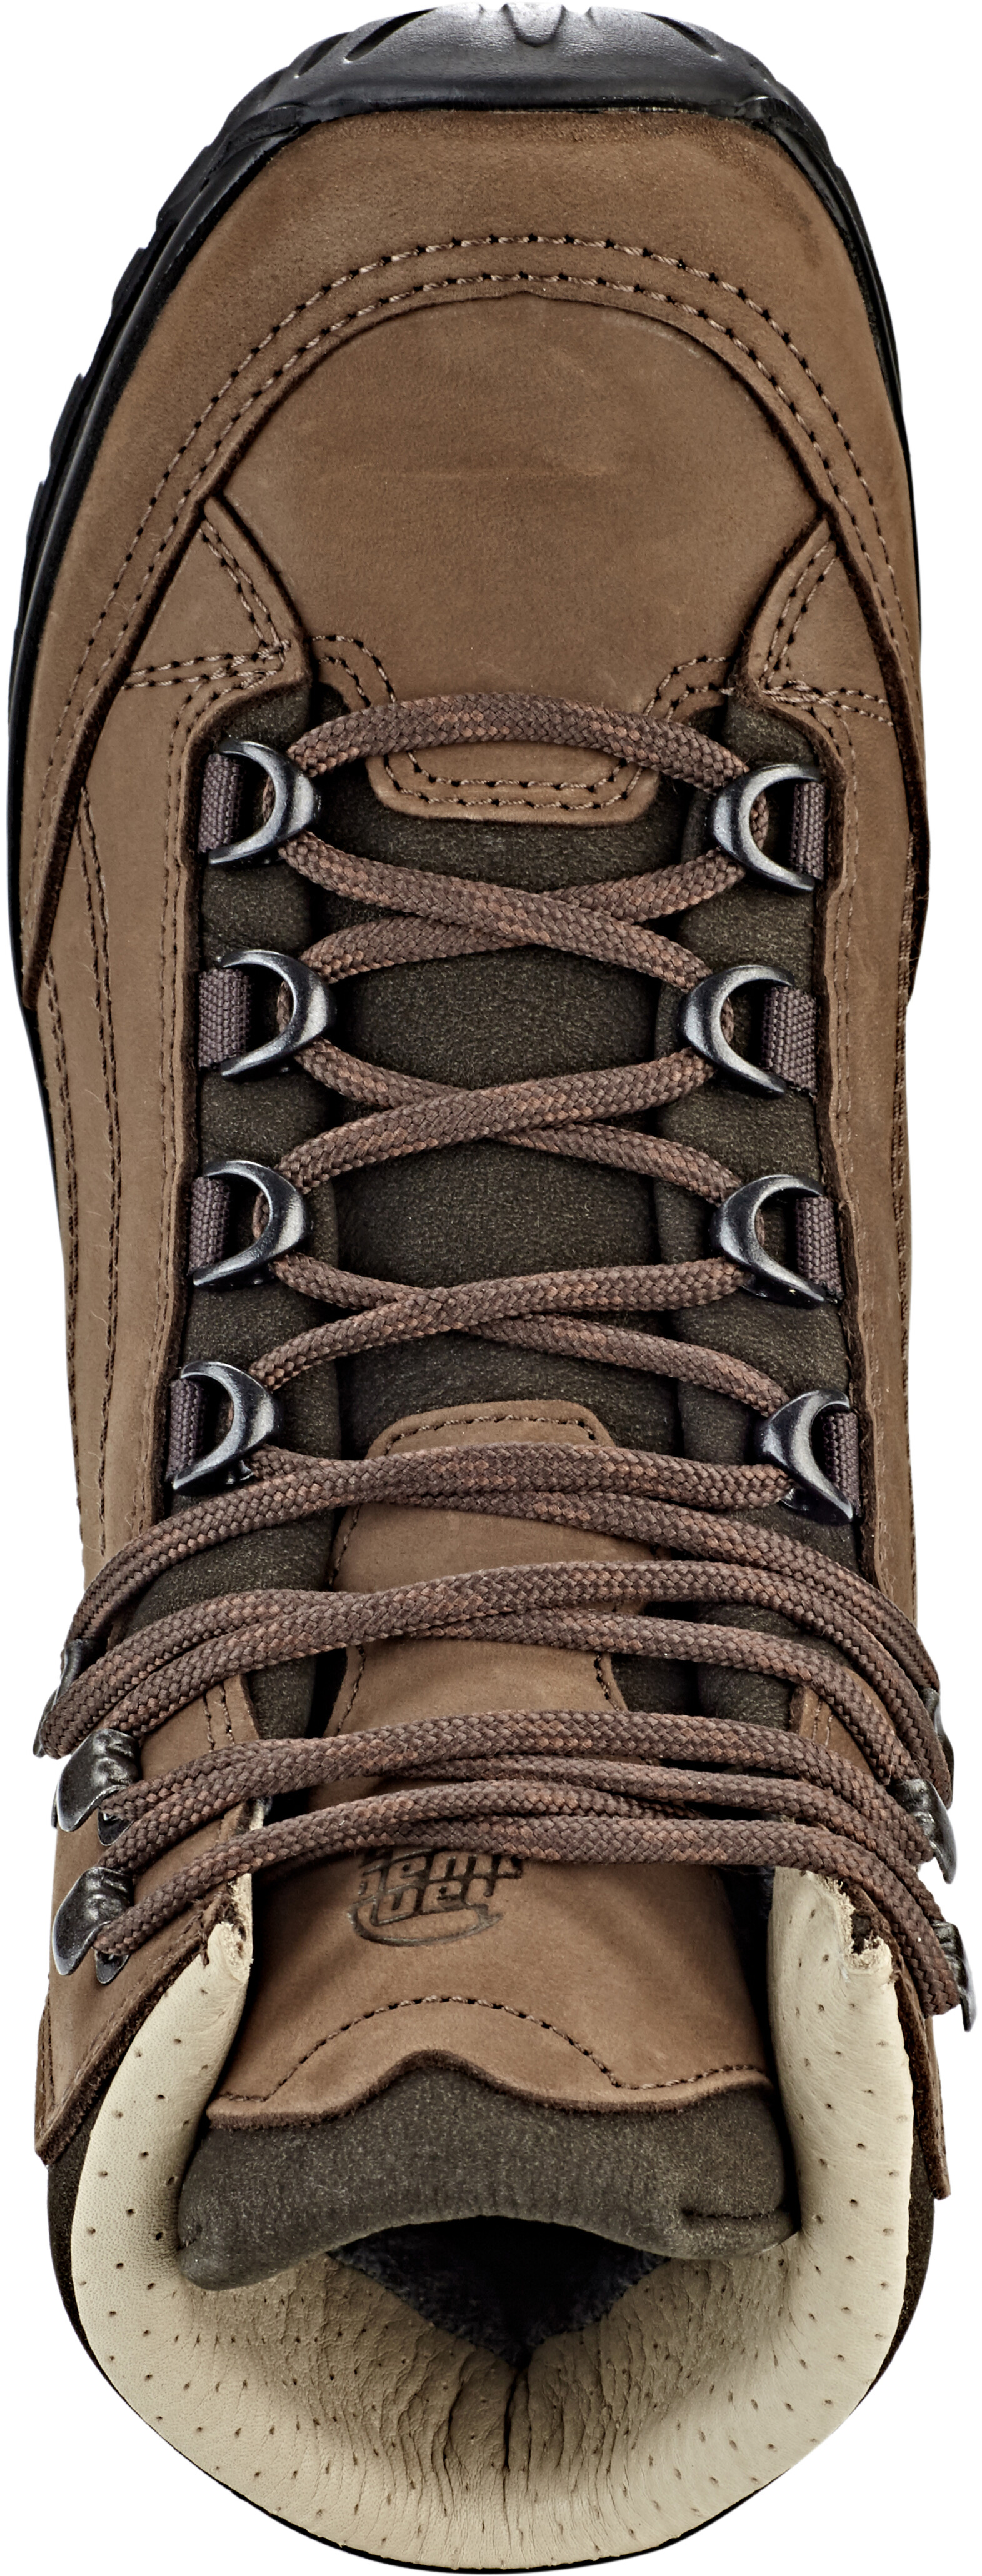 18f0bcabd9f Hanwag Canyon Wide GTX Shoes Women brown at Addnature.co.uk